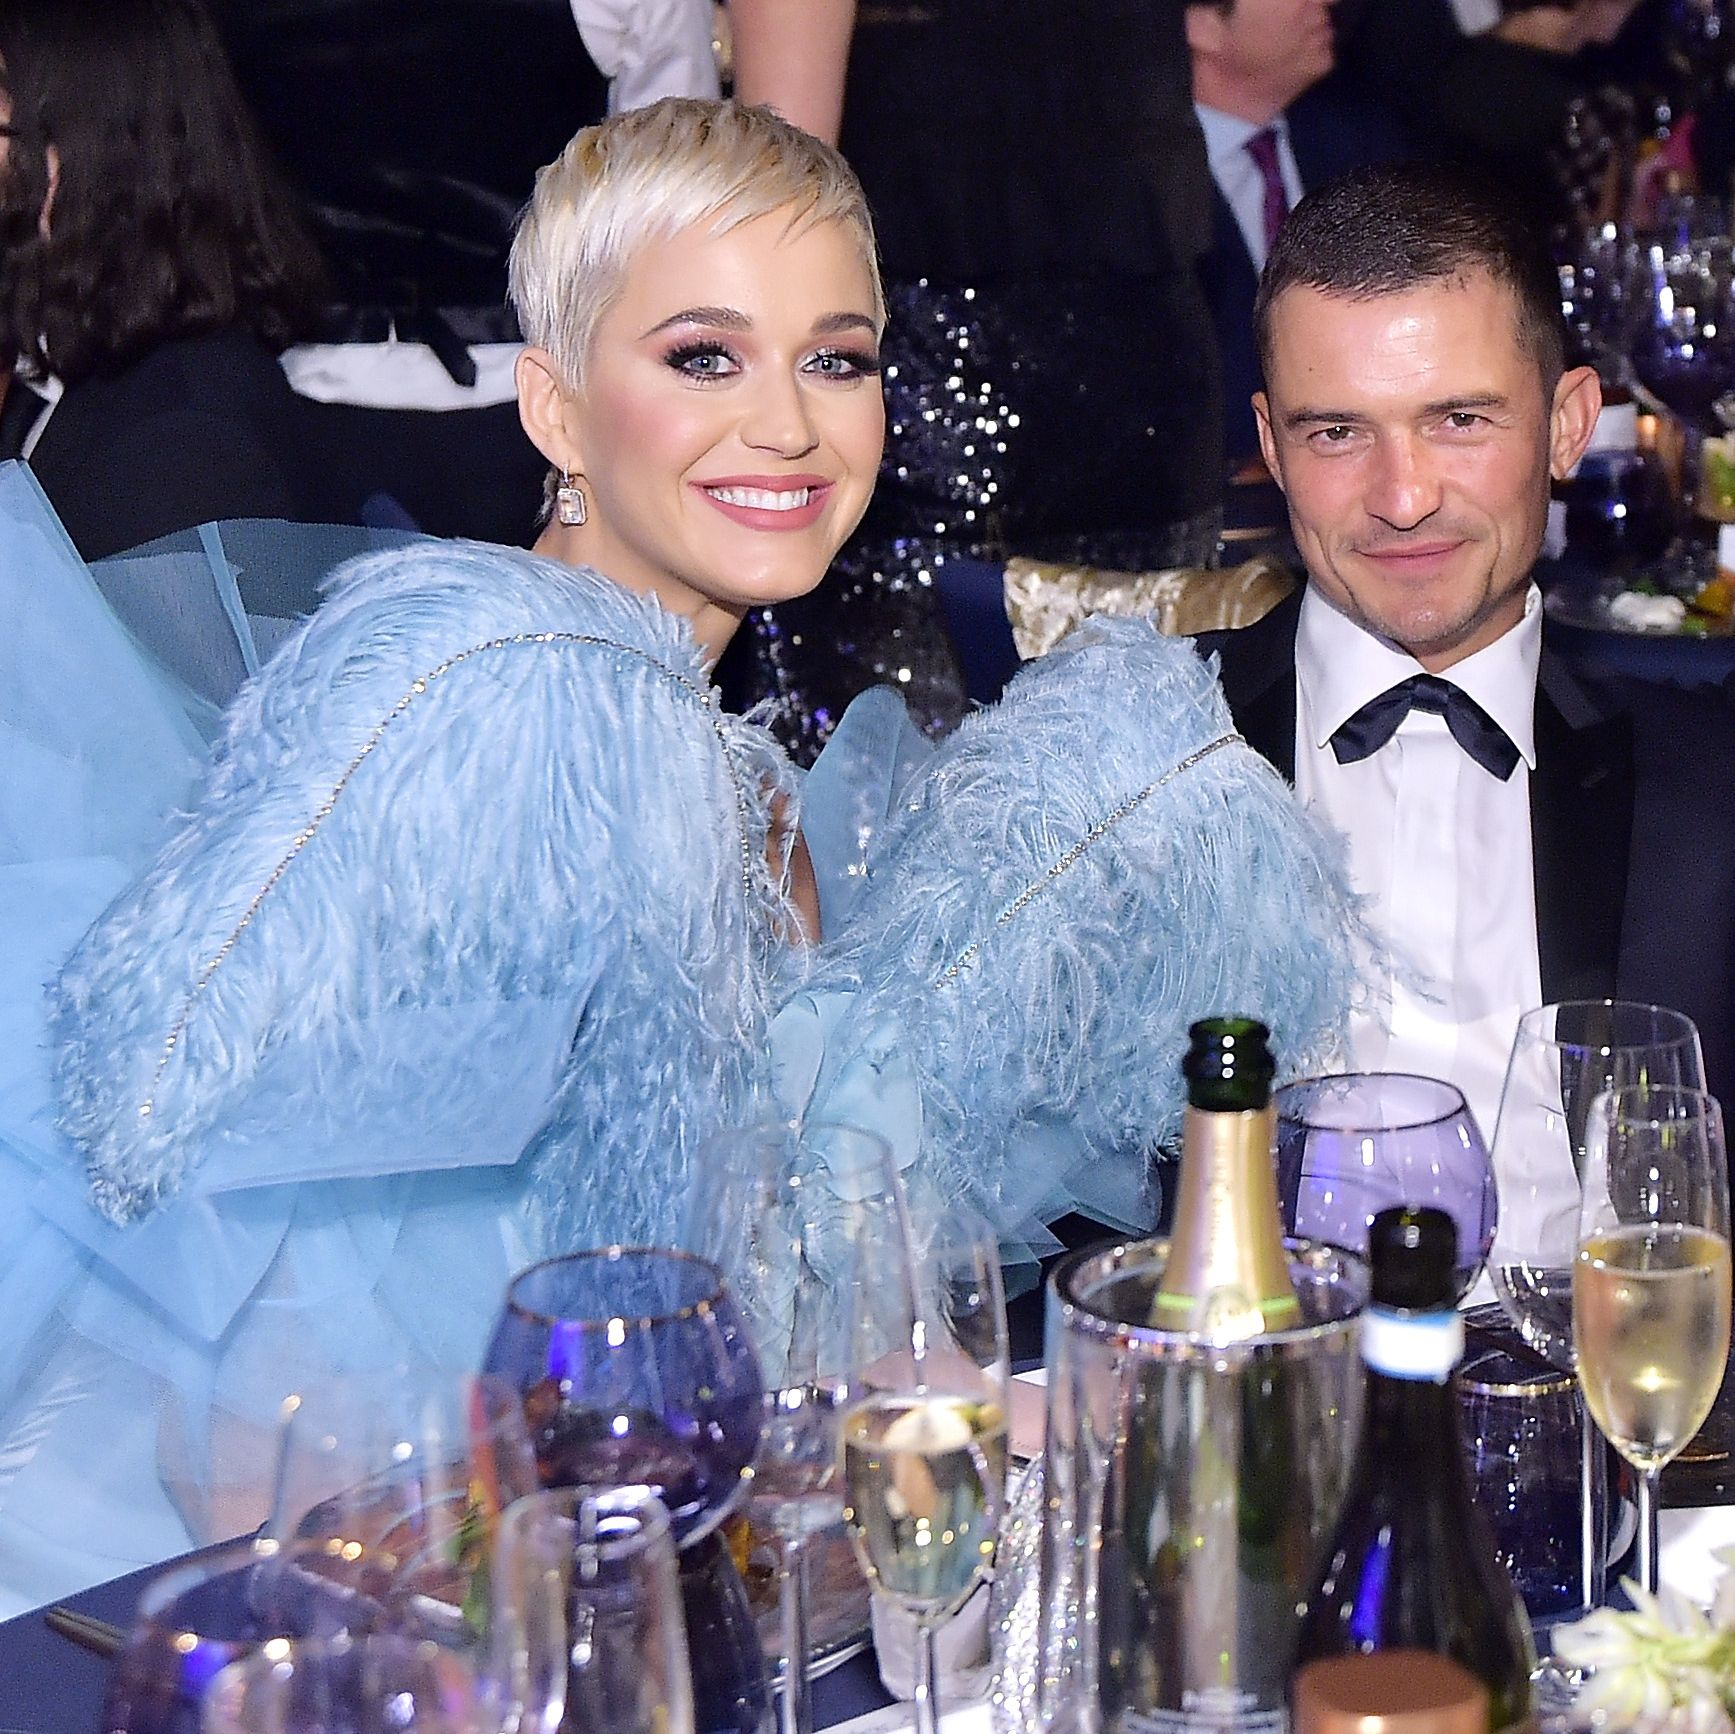 Katy Perry and Orlando Bloom Announce They're Engaged With a Ring Shot